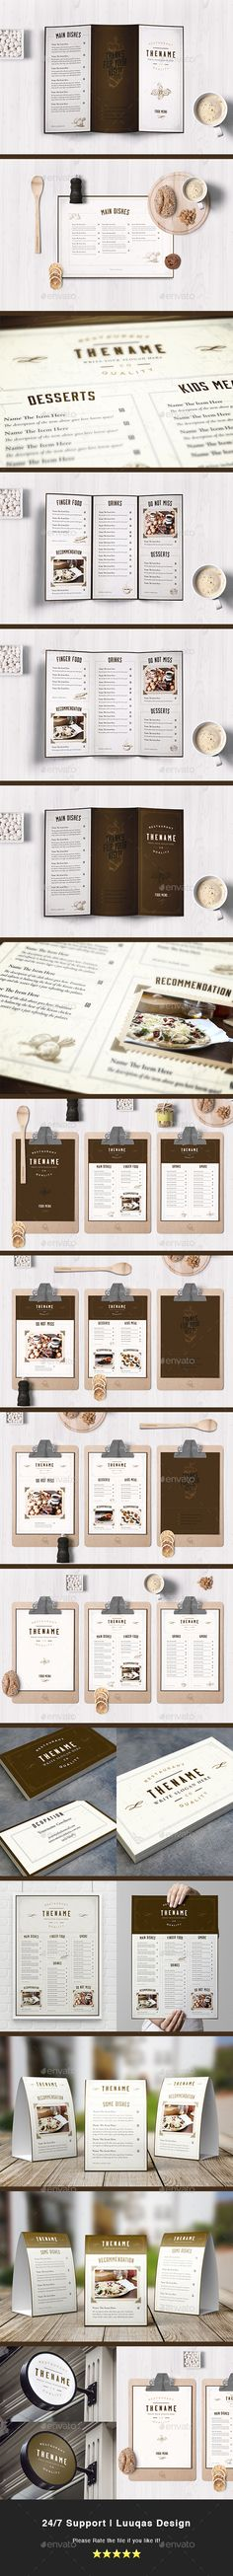 Classy Food Menu 6 Template Vector EPS, AI Illustrator. Download here: https://graphicriver.net/item/classy-food-menu-6-template/17449969?ref=ksioks